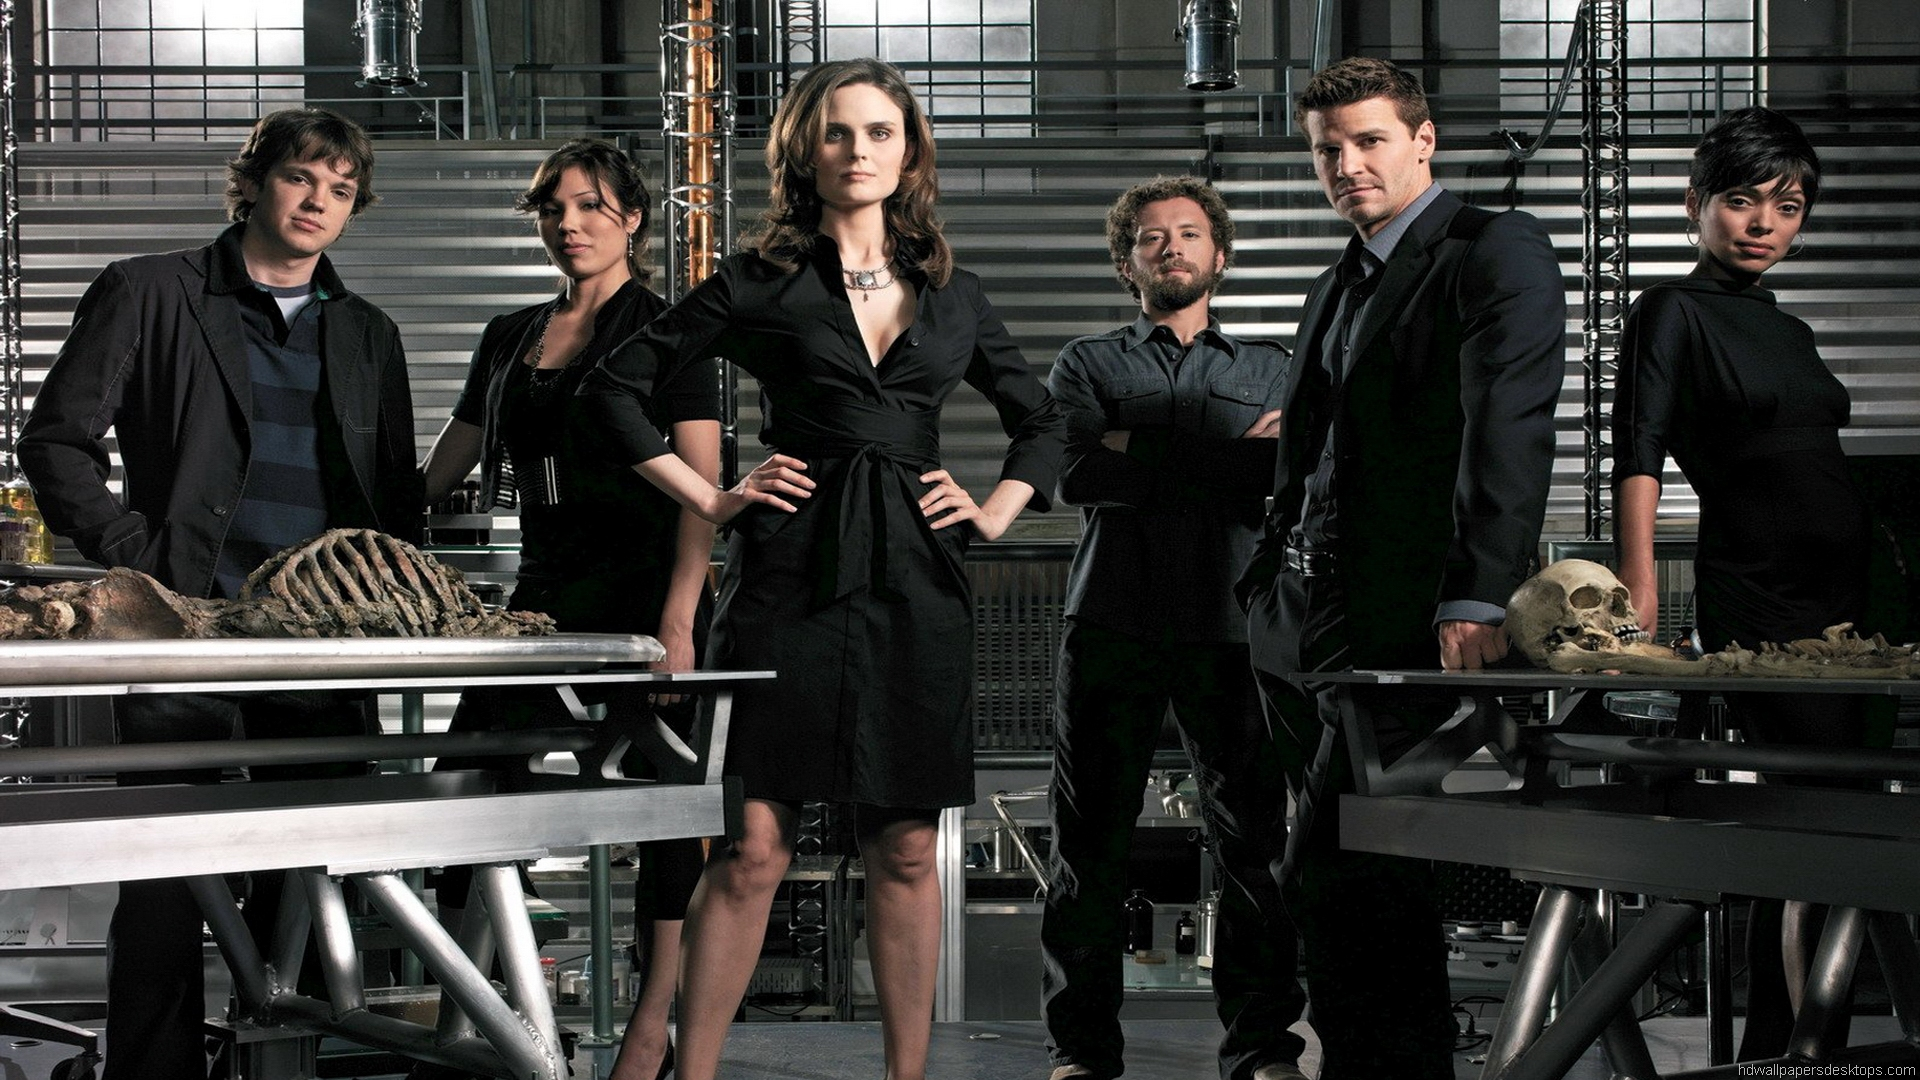 http://wallpapersboom.net/wp-content/uploads/2015/05/2258_bones_tv_series.jpg Crossbones Tv Show